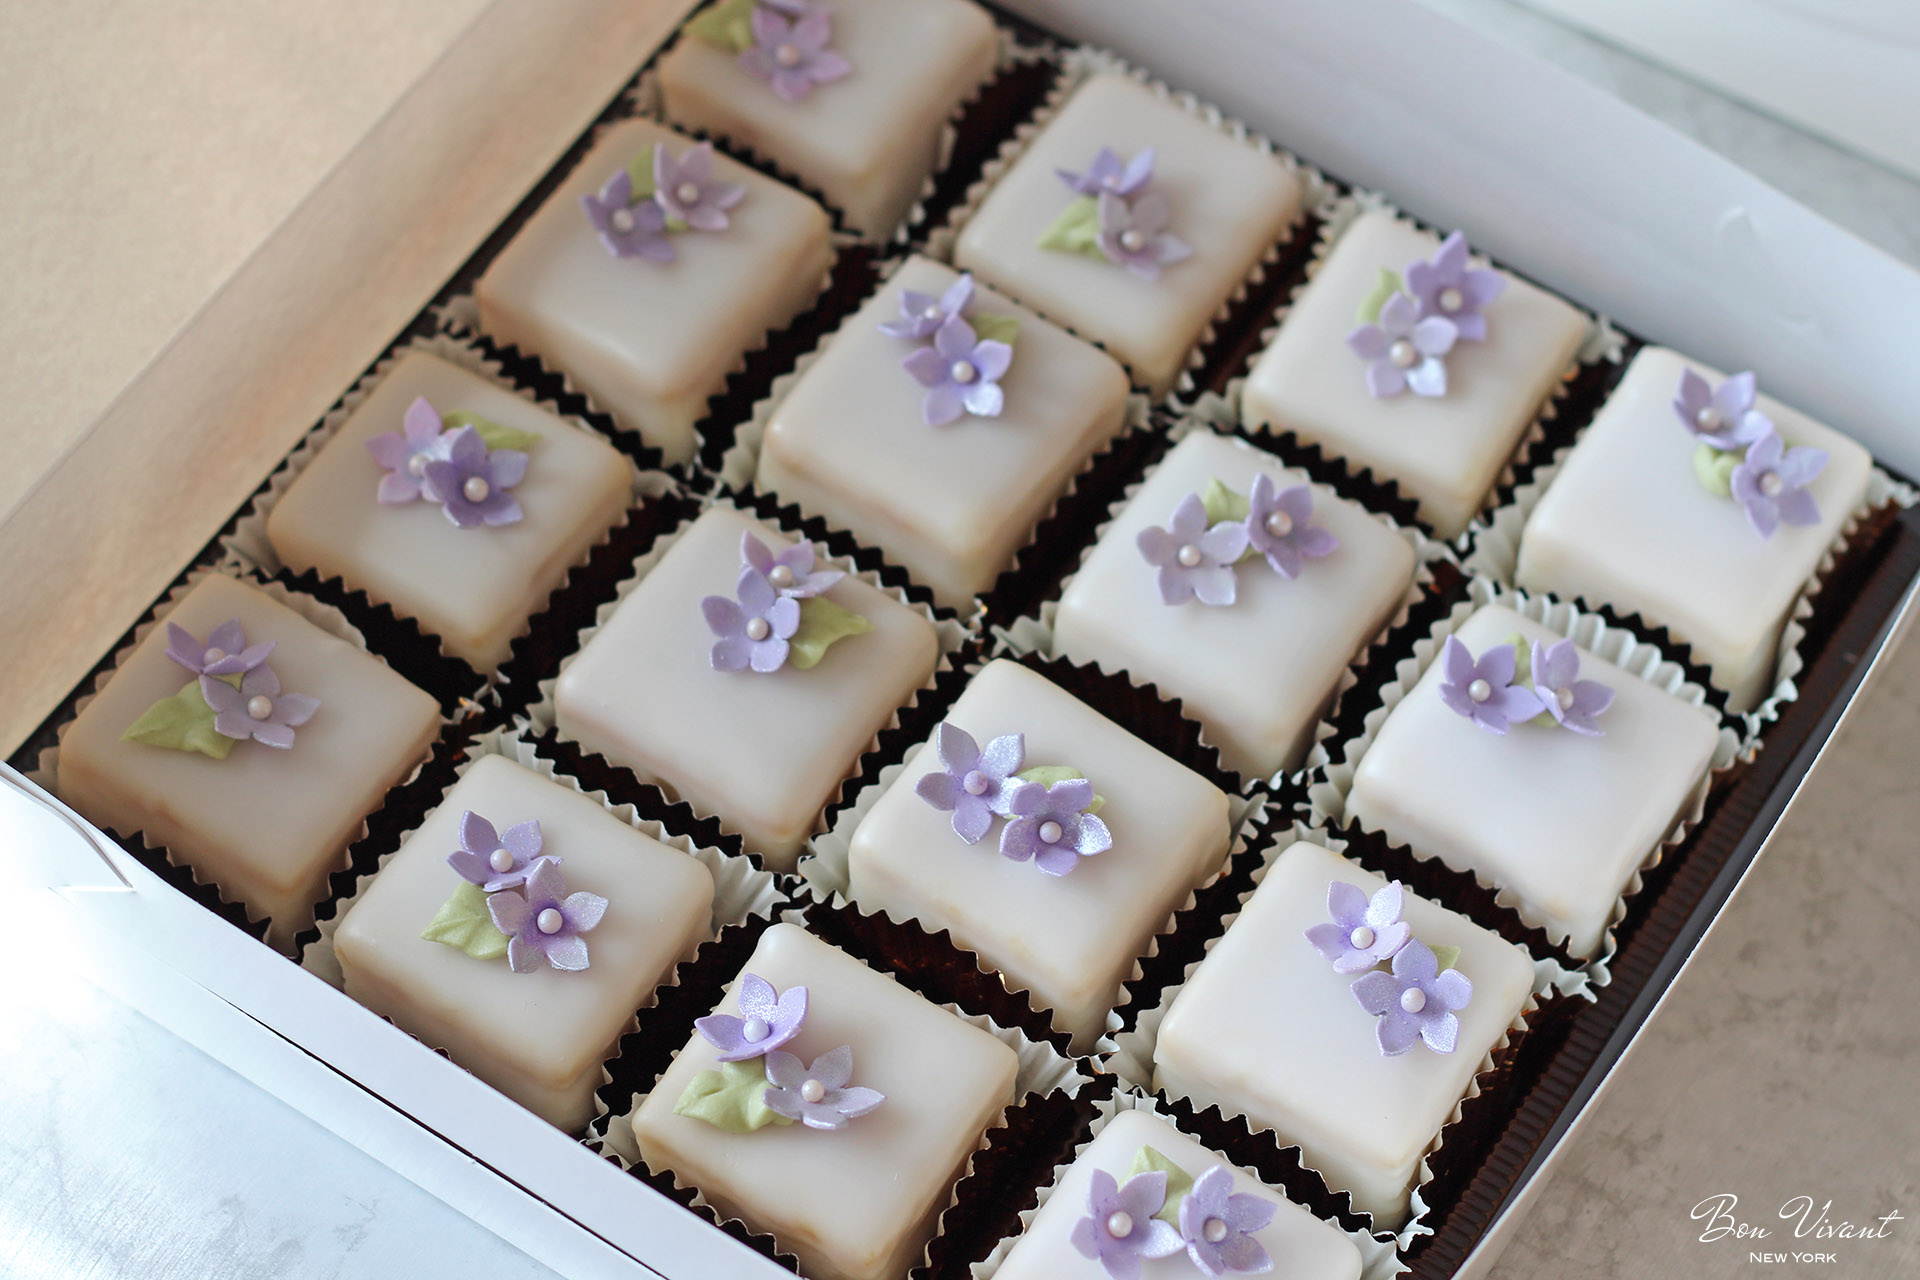 Petit cakes with lavender flower and leaf design